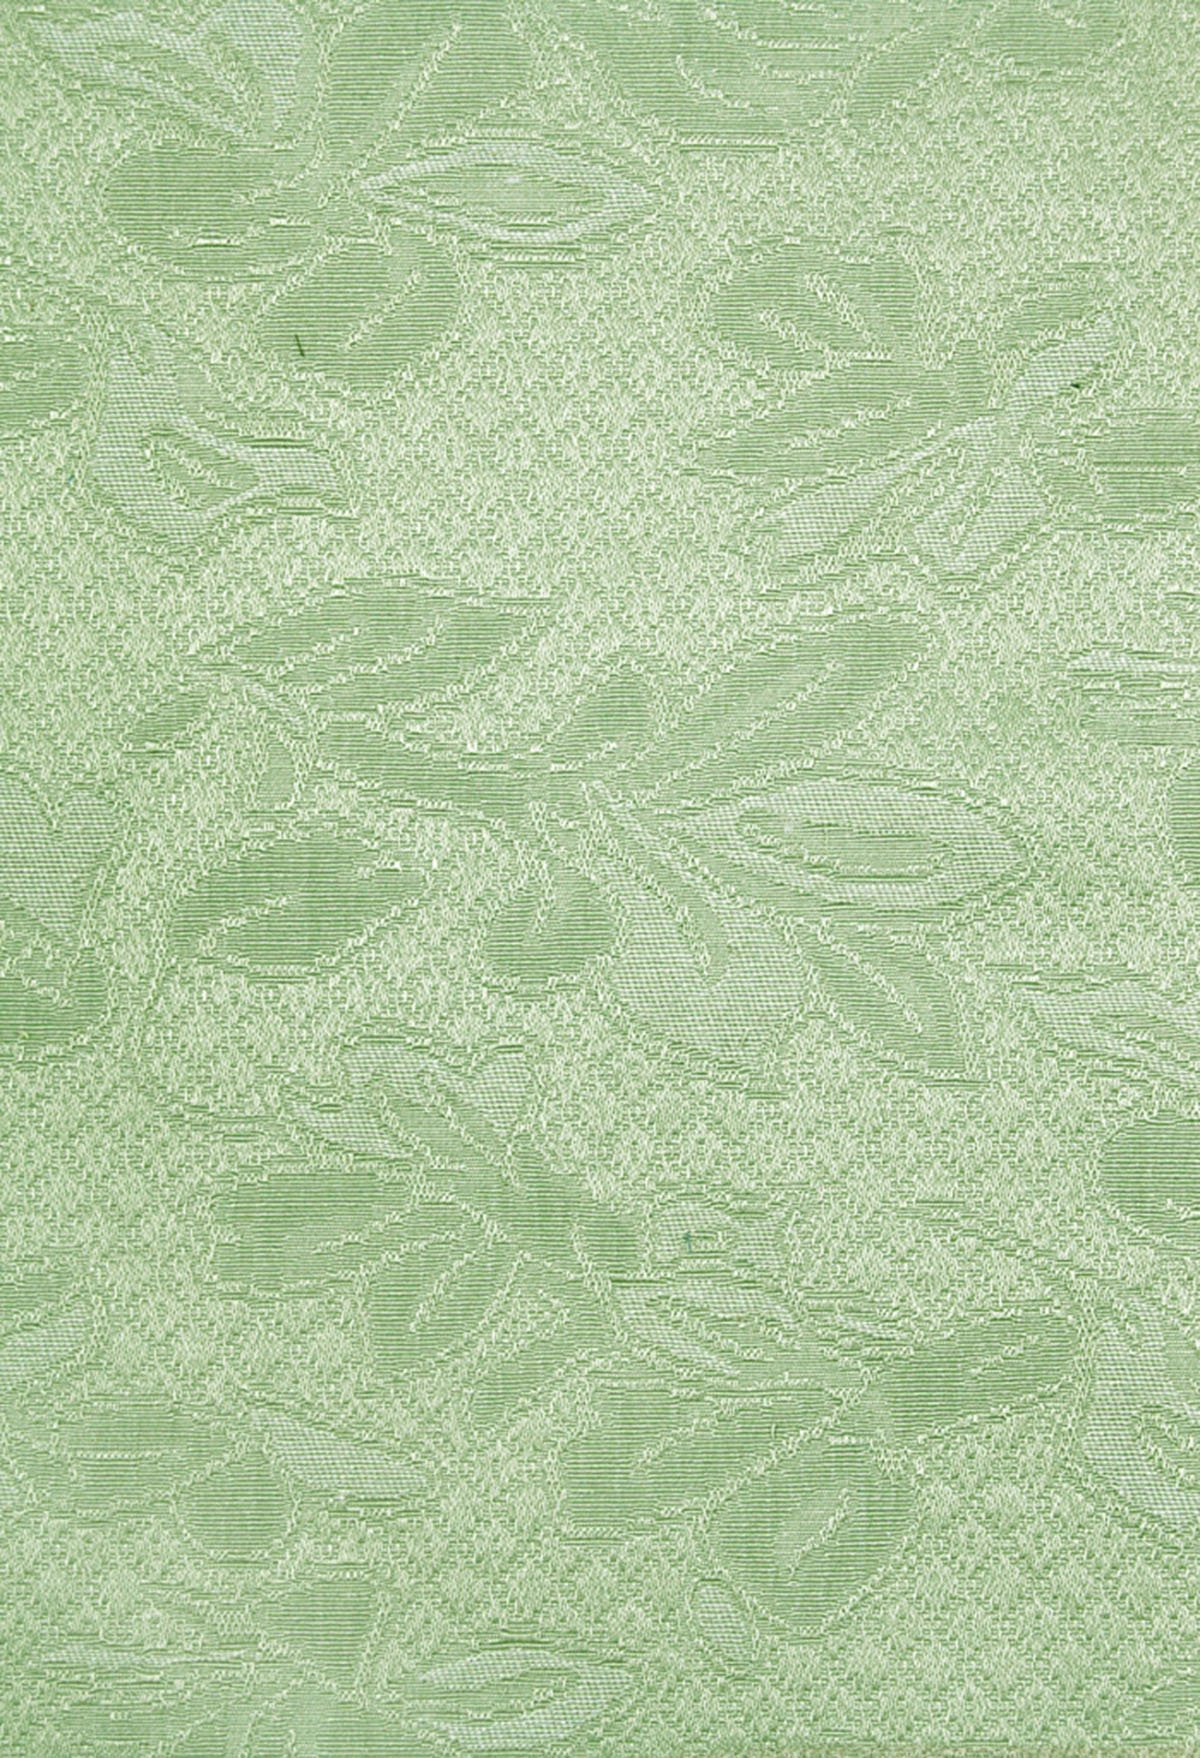 Healthcare Interiors Sea Spice Unquilted Twin Bed Spread (Mint) by Healthcare Interiors (Image #1)